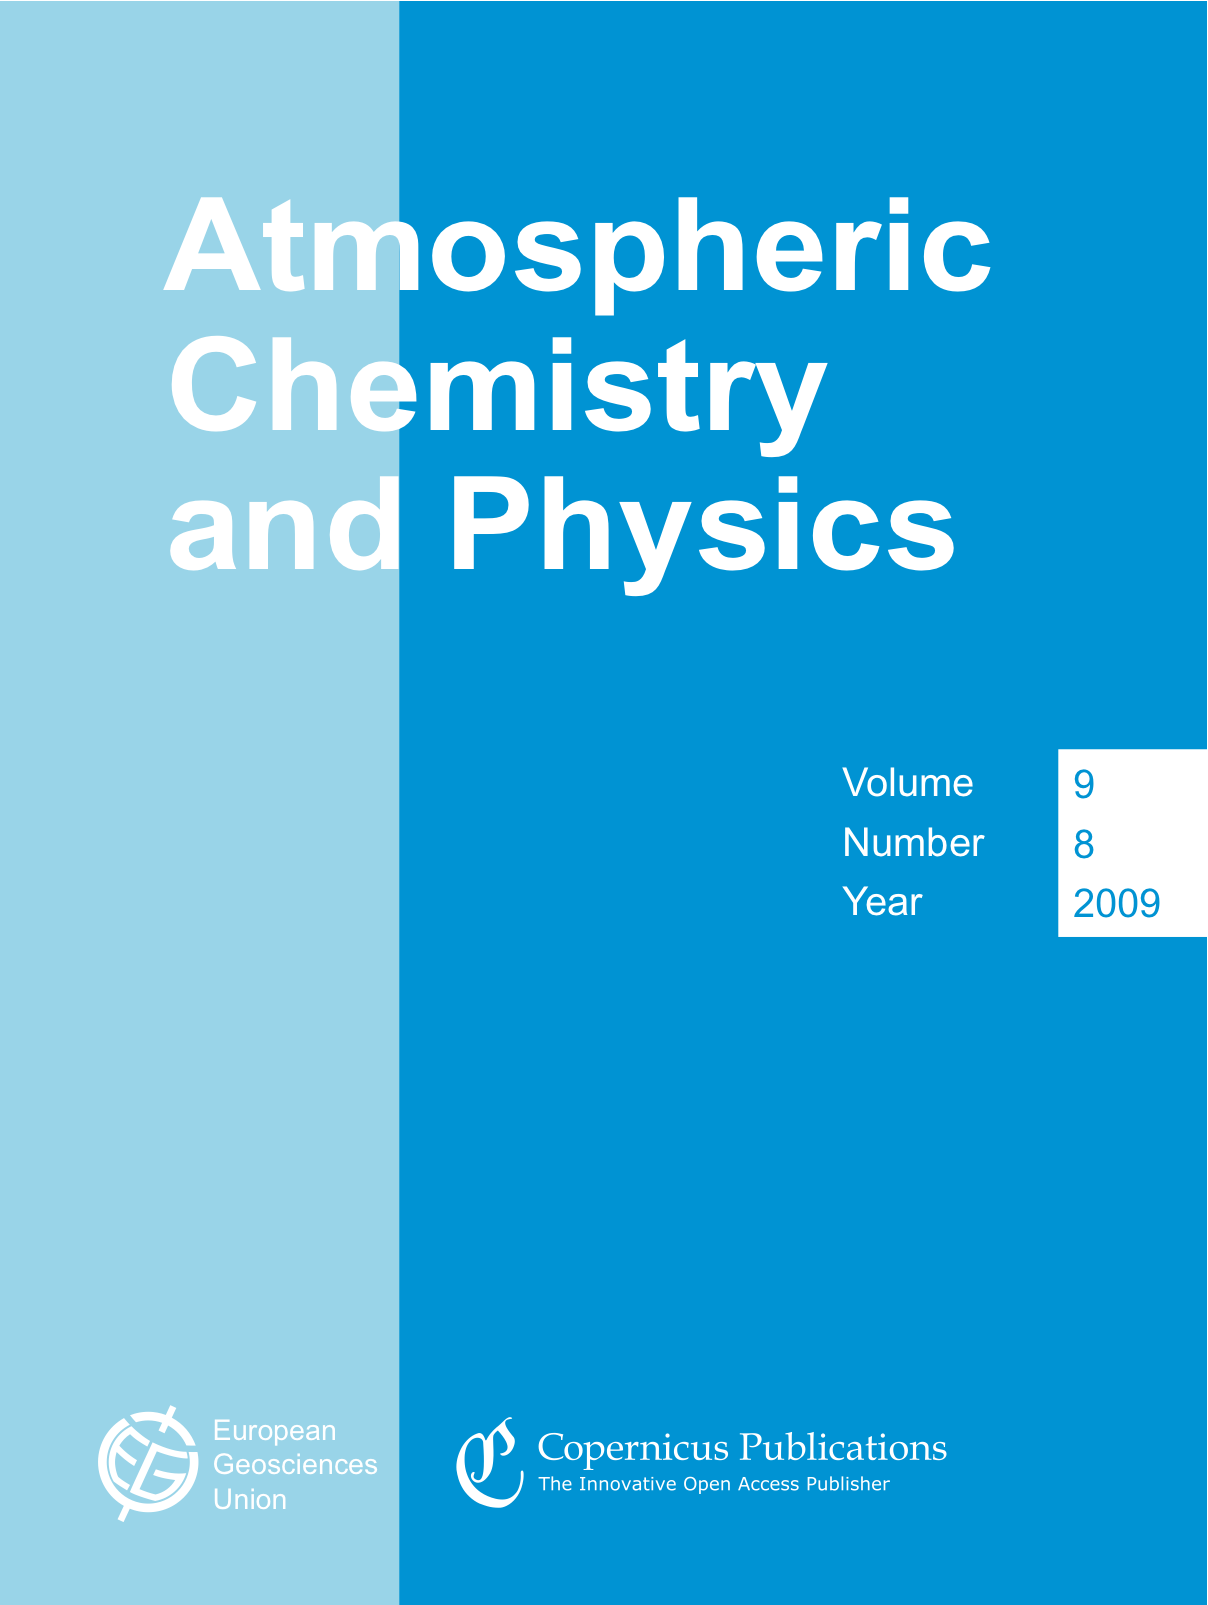 Accepted at atmospheric chemistry and physics after nearly two and